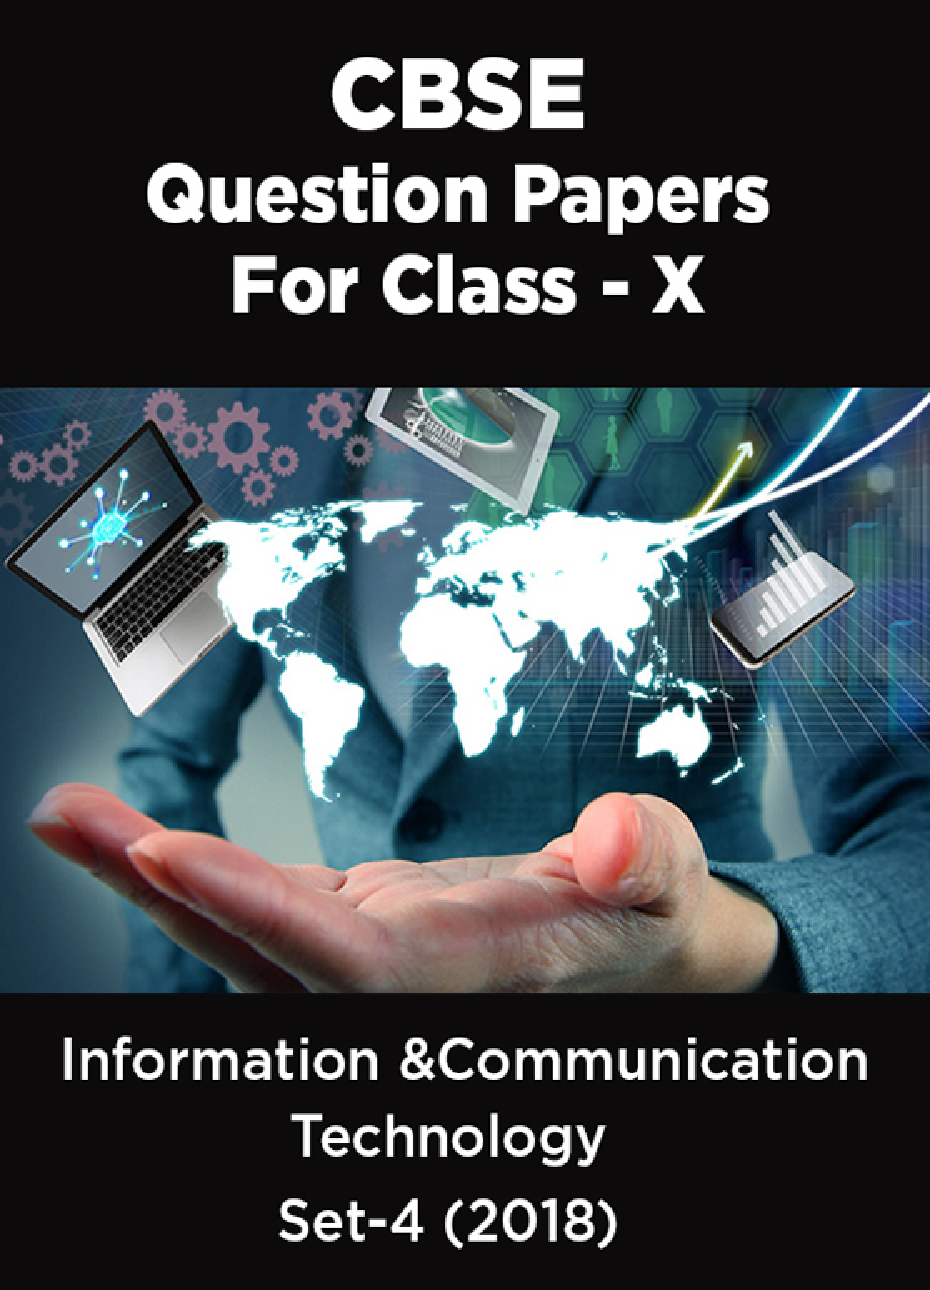 CBSE Question Papers For Class - X Information & Communication Technology Set-4 (2018) - Page 1